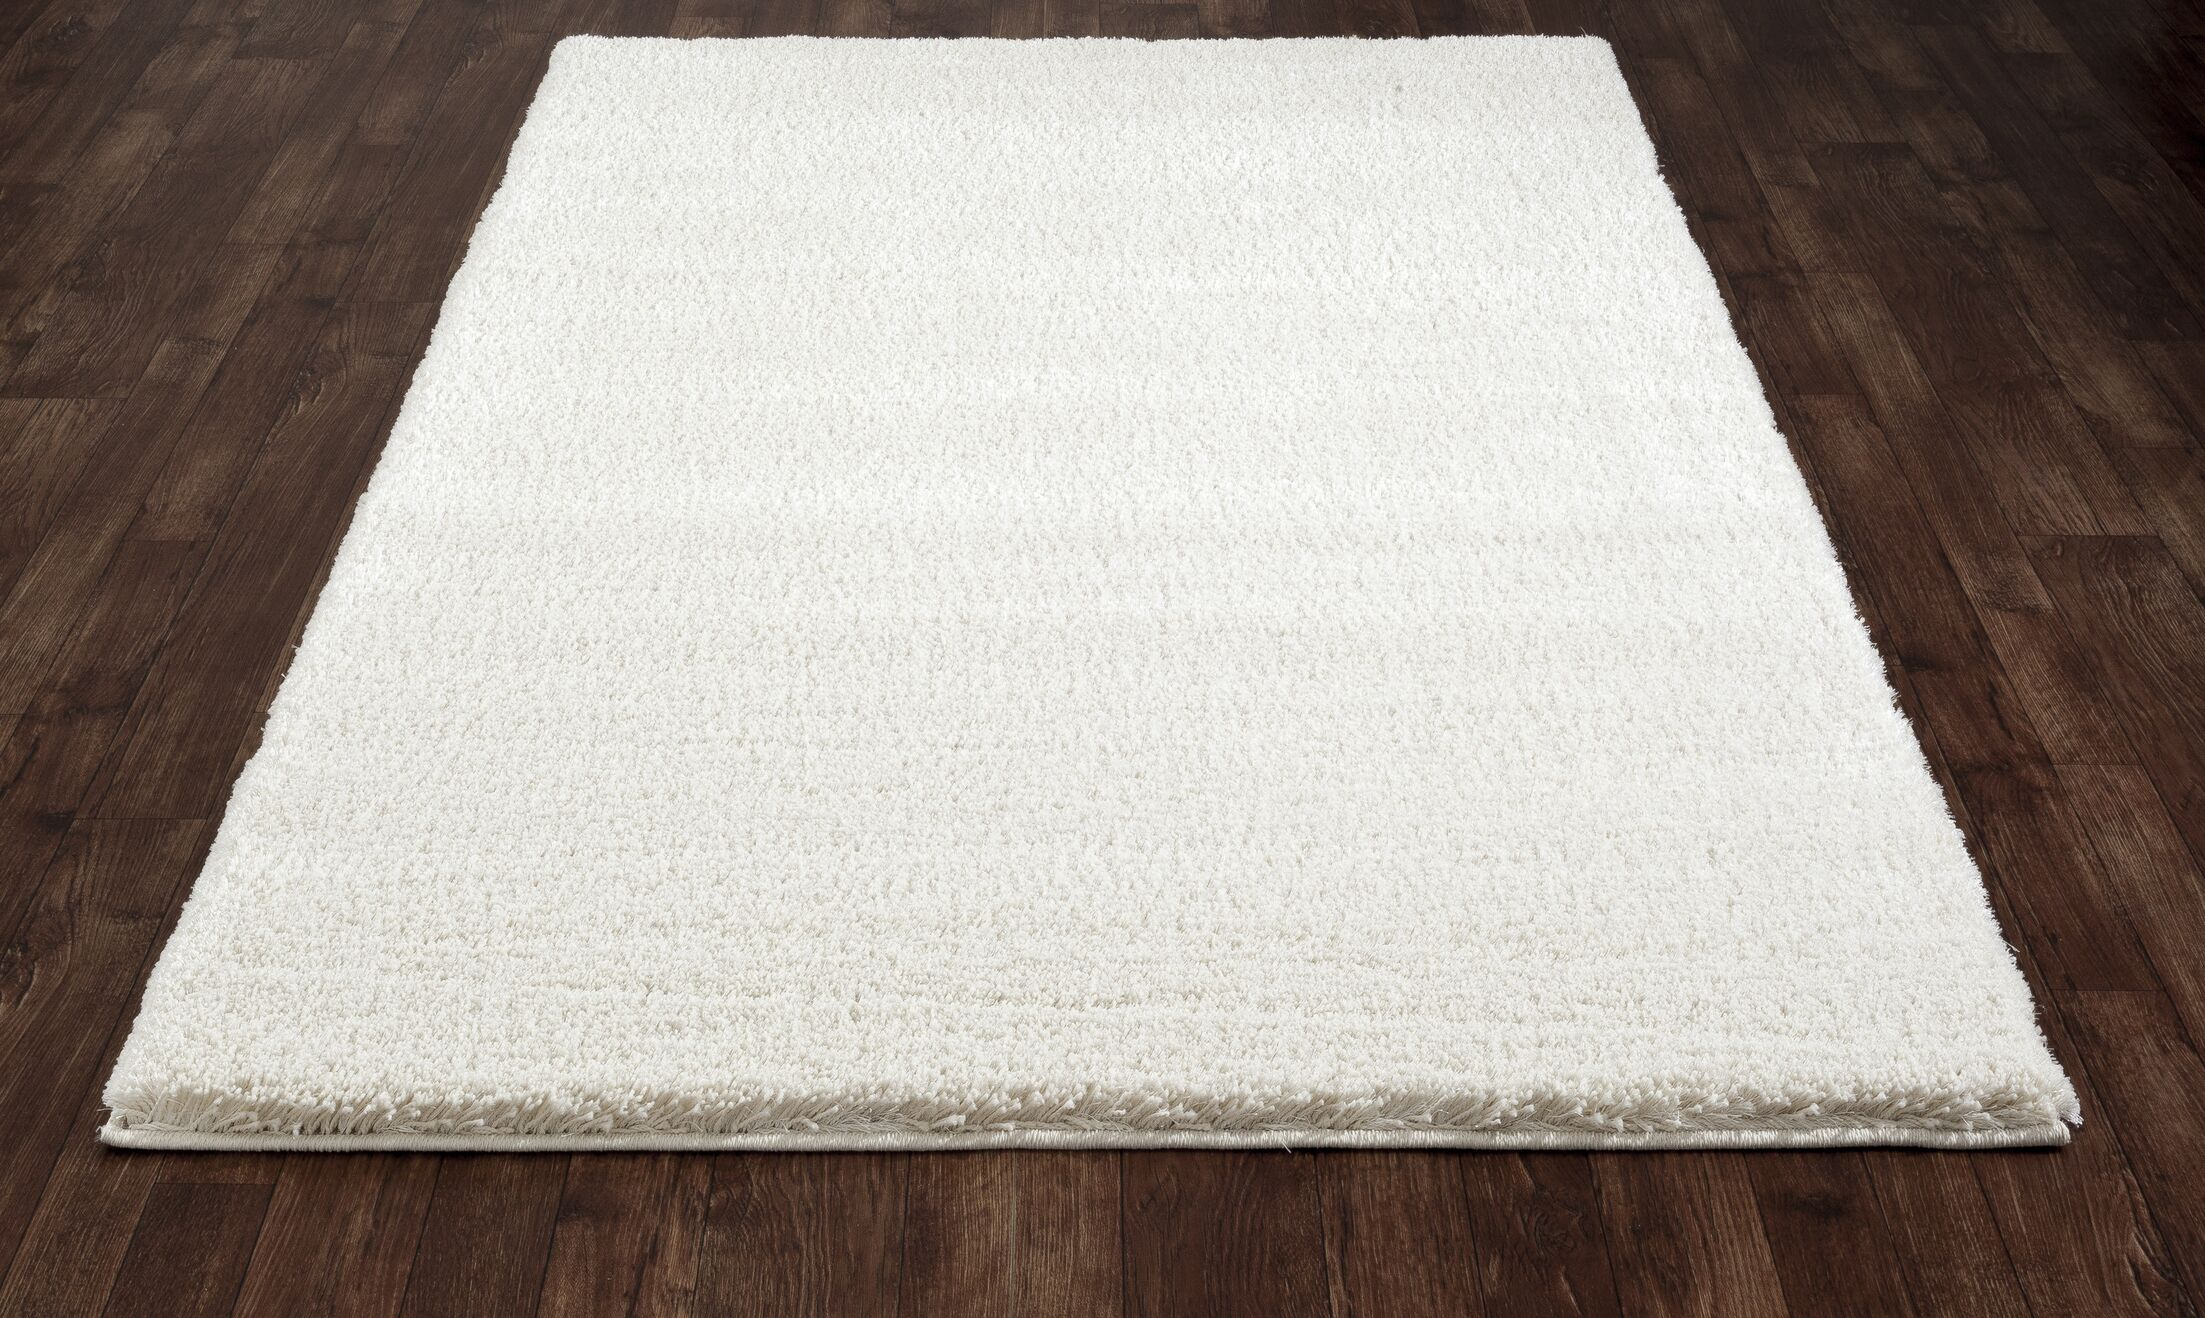 Hickey Plush Pile Shag White Area Rug Rug Size: Rectangle 3'4